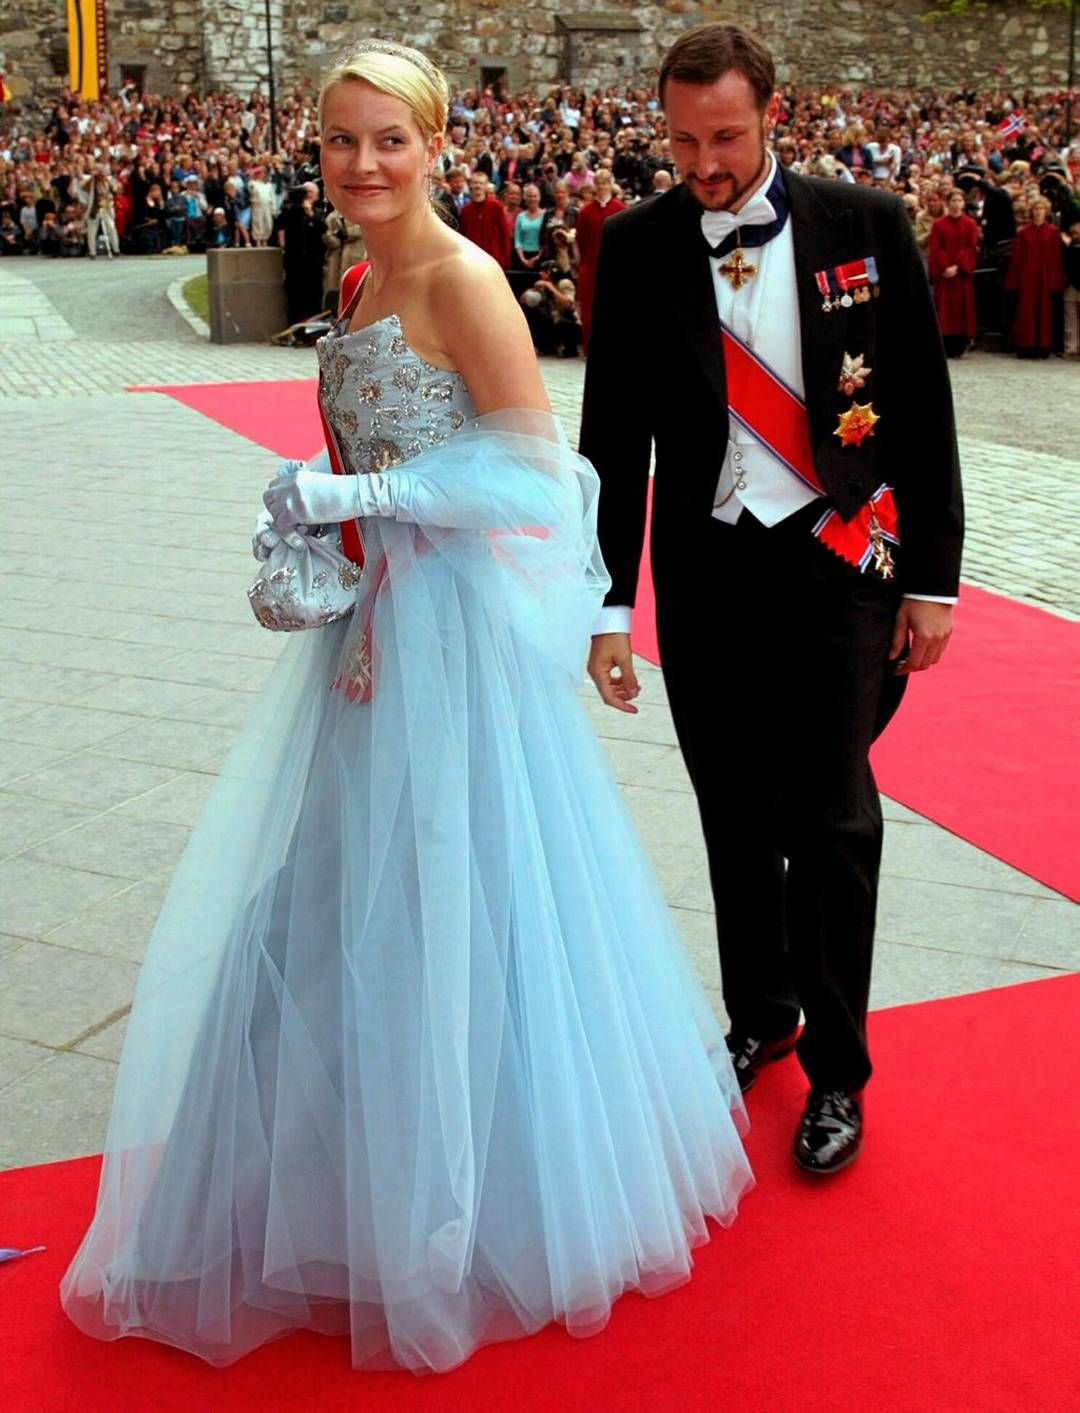 Crown Princess Mette-Marit and Crown Prince Haakon of Norway arrive at Trondheim Cathedral; wedding of Princess Märtha Louise of Norway and mr. Ari Behn, May 24th 2002